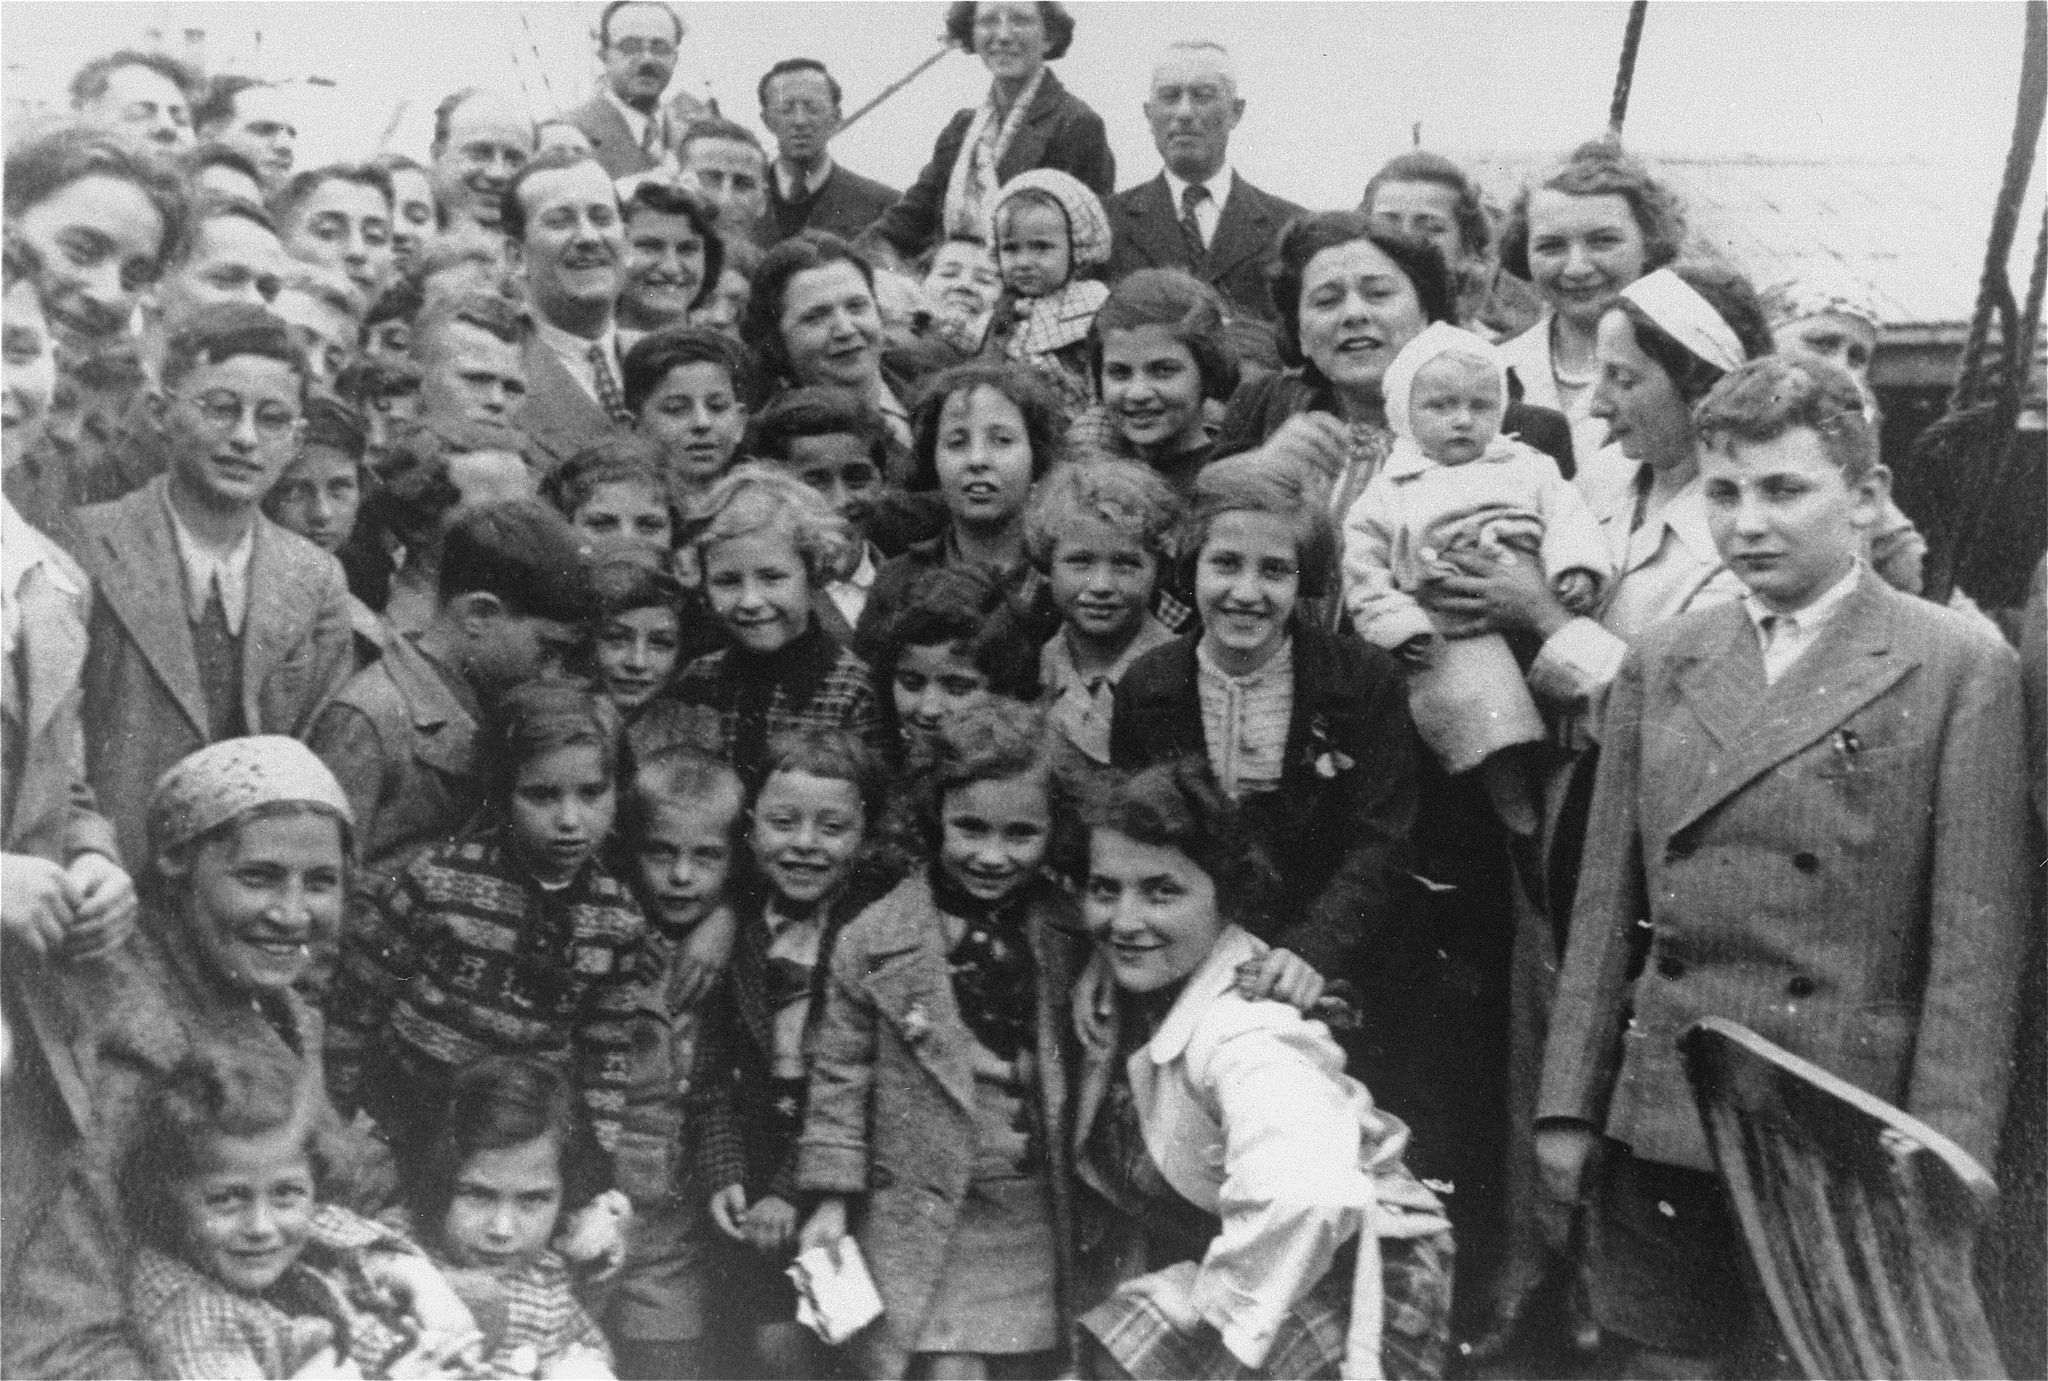 German Jewish refugee children on ship St. Louis which was turned away from U.S. harbors and sent back to Europe.